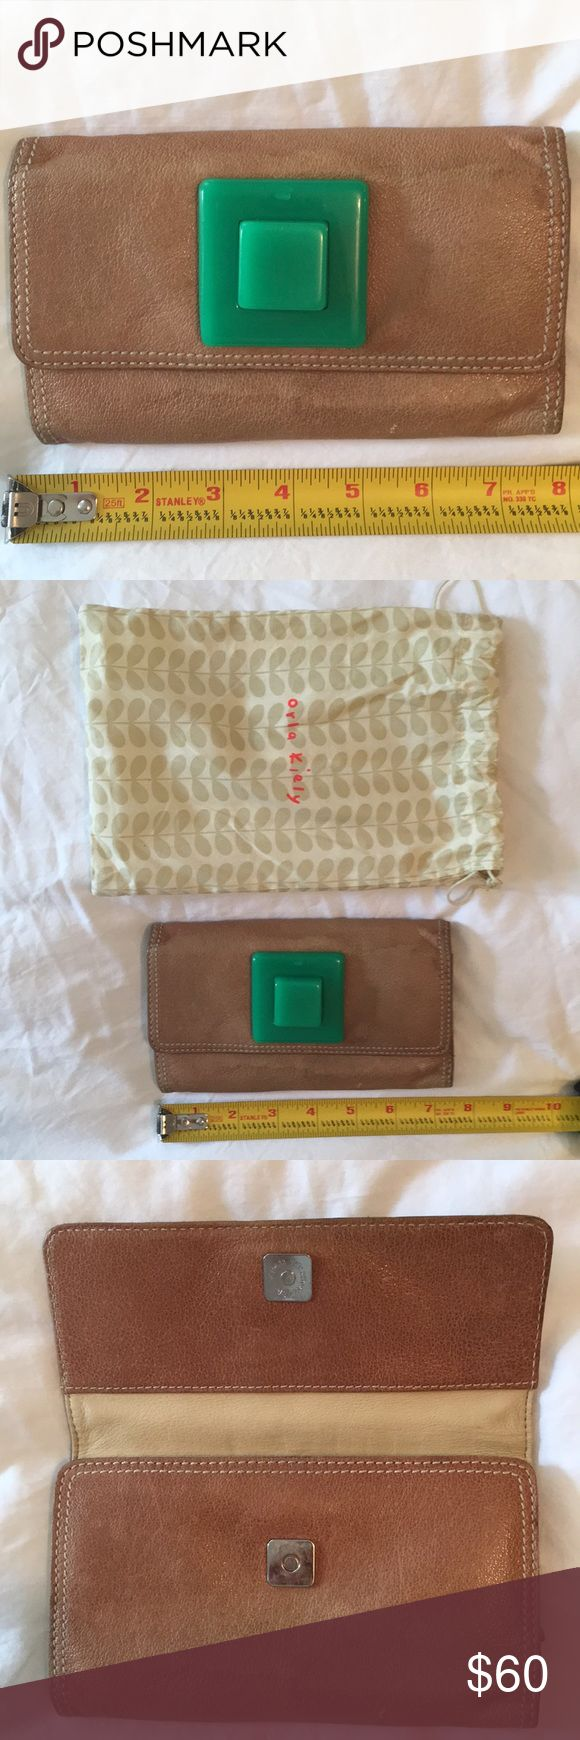 Orla Kiely Leather Wallet Orla Kiely Leather wallet with green accent So cool Used & loved but still has a lot of life Matching handbag also for sale Orla Kiely Bags Wallets